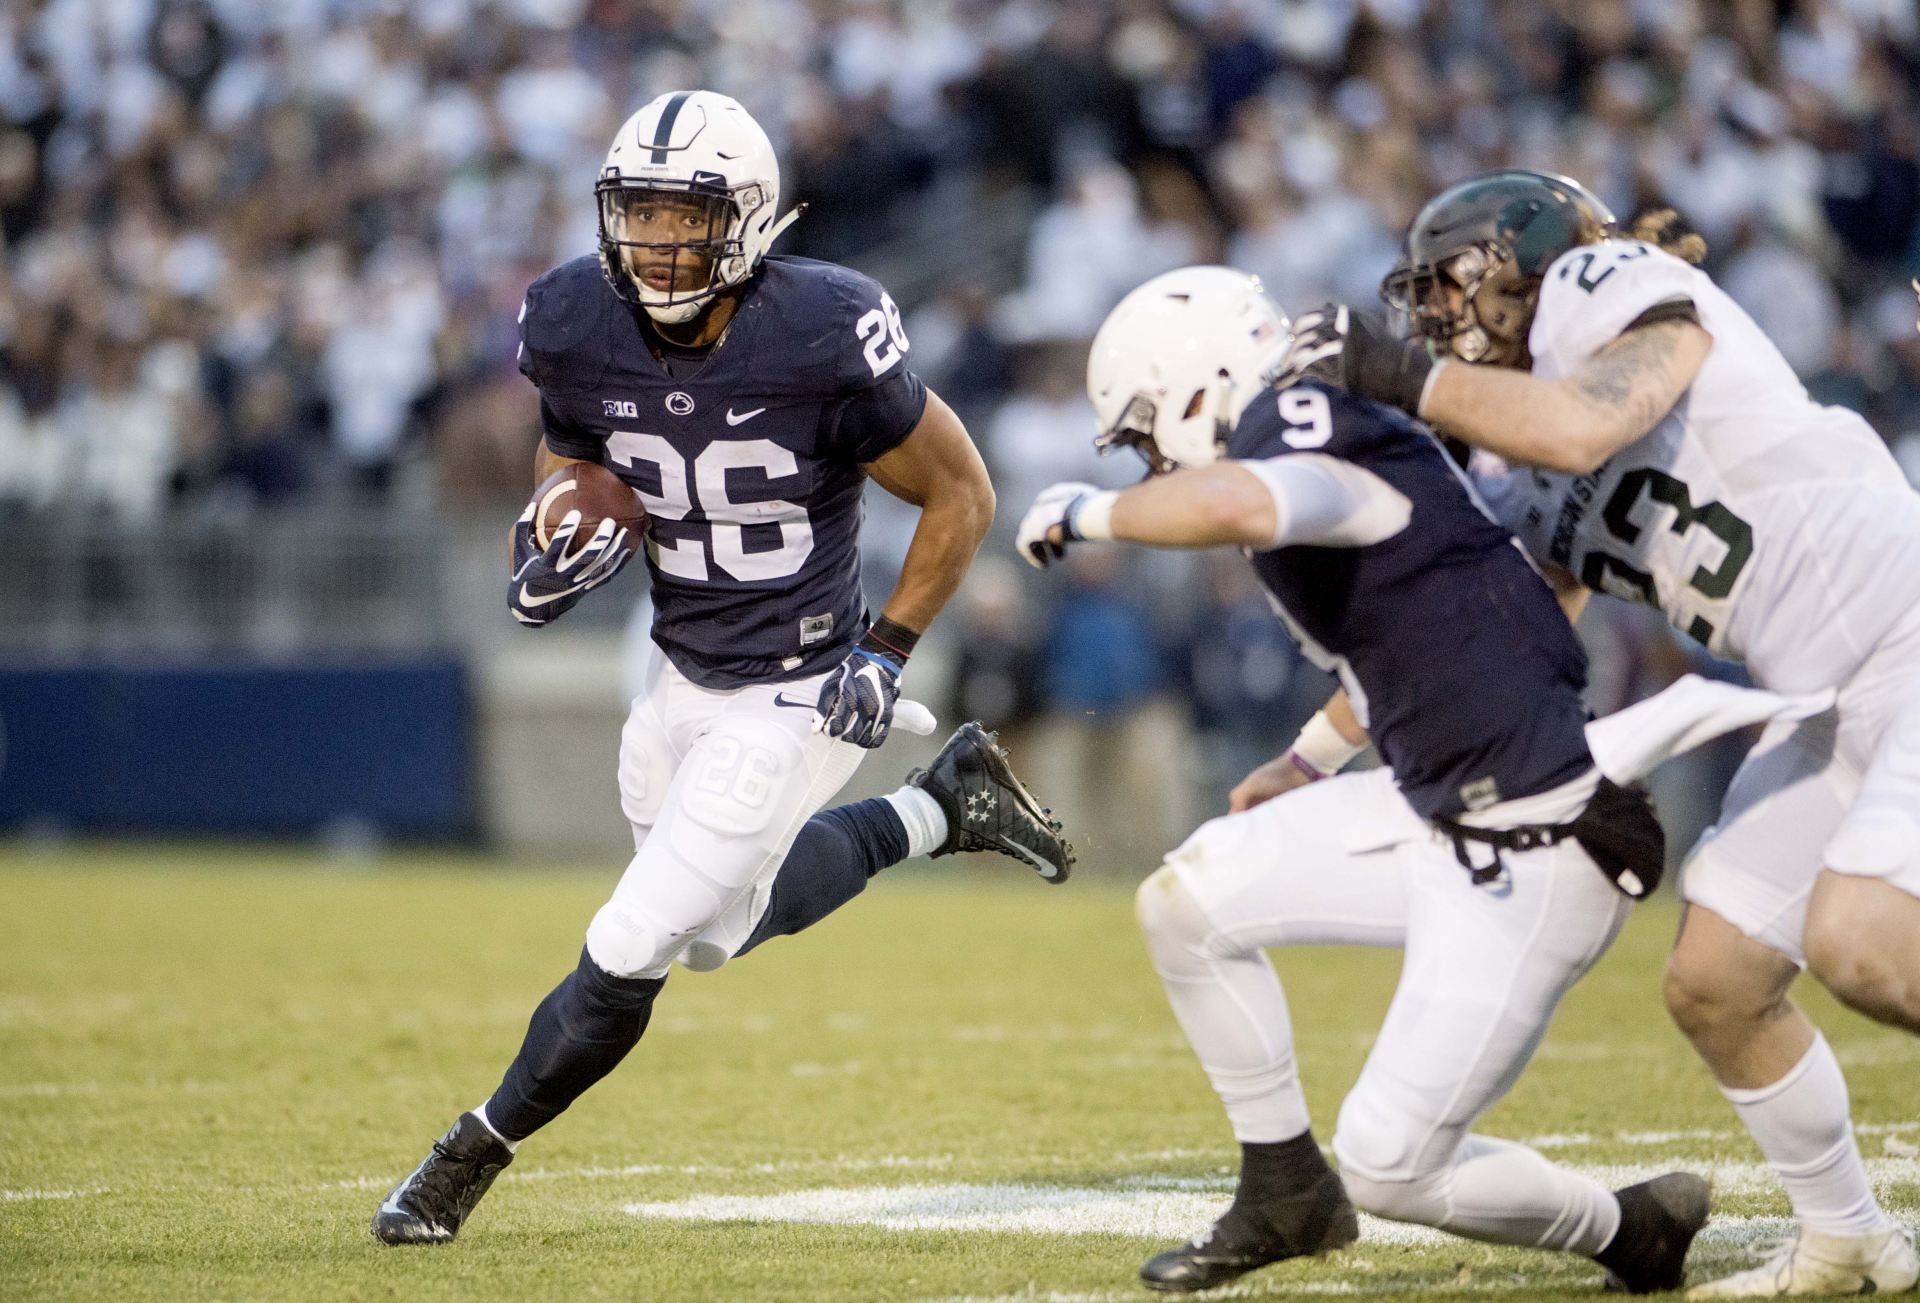 Penn State running back Saquon Barkley (26) runs down the field with the  ball as quarterback Trace McSorley (9) blocks Michigan State linebacker  Chris Frey ... 437446651